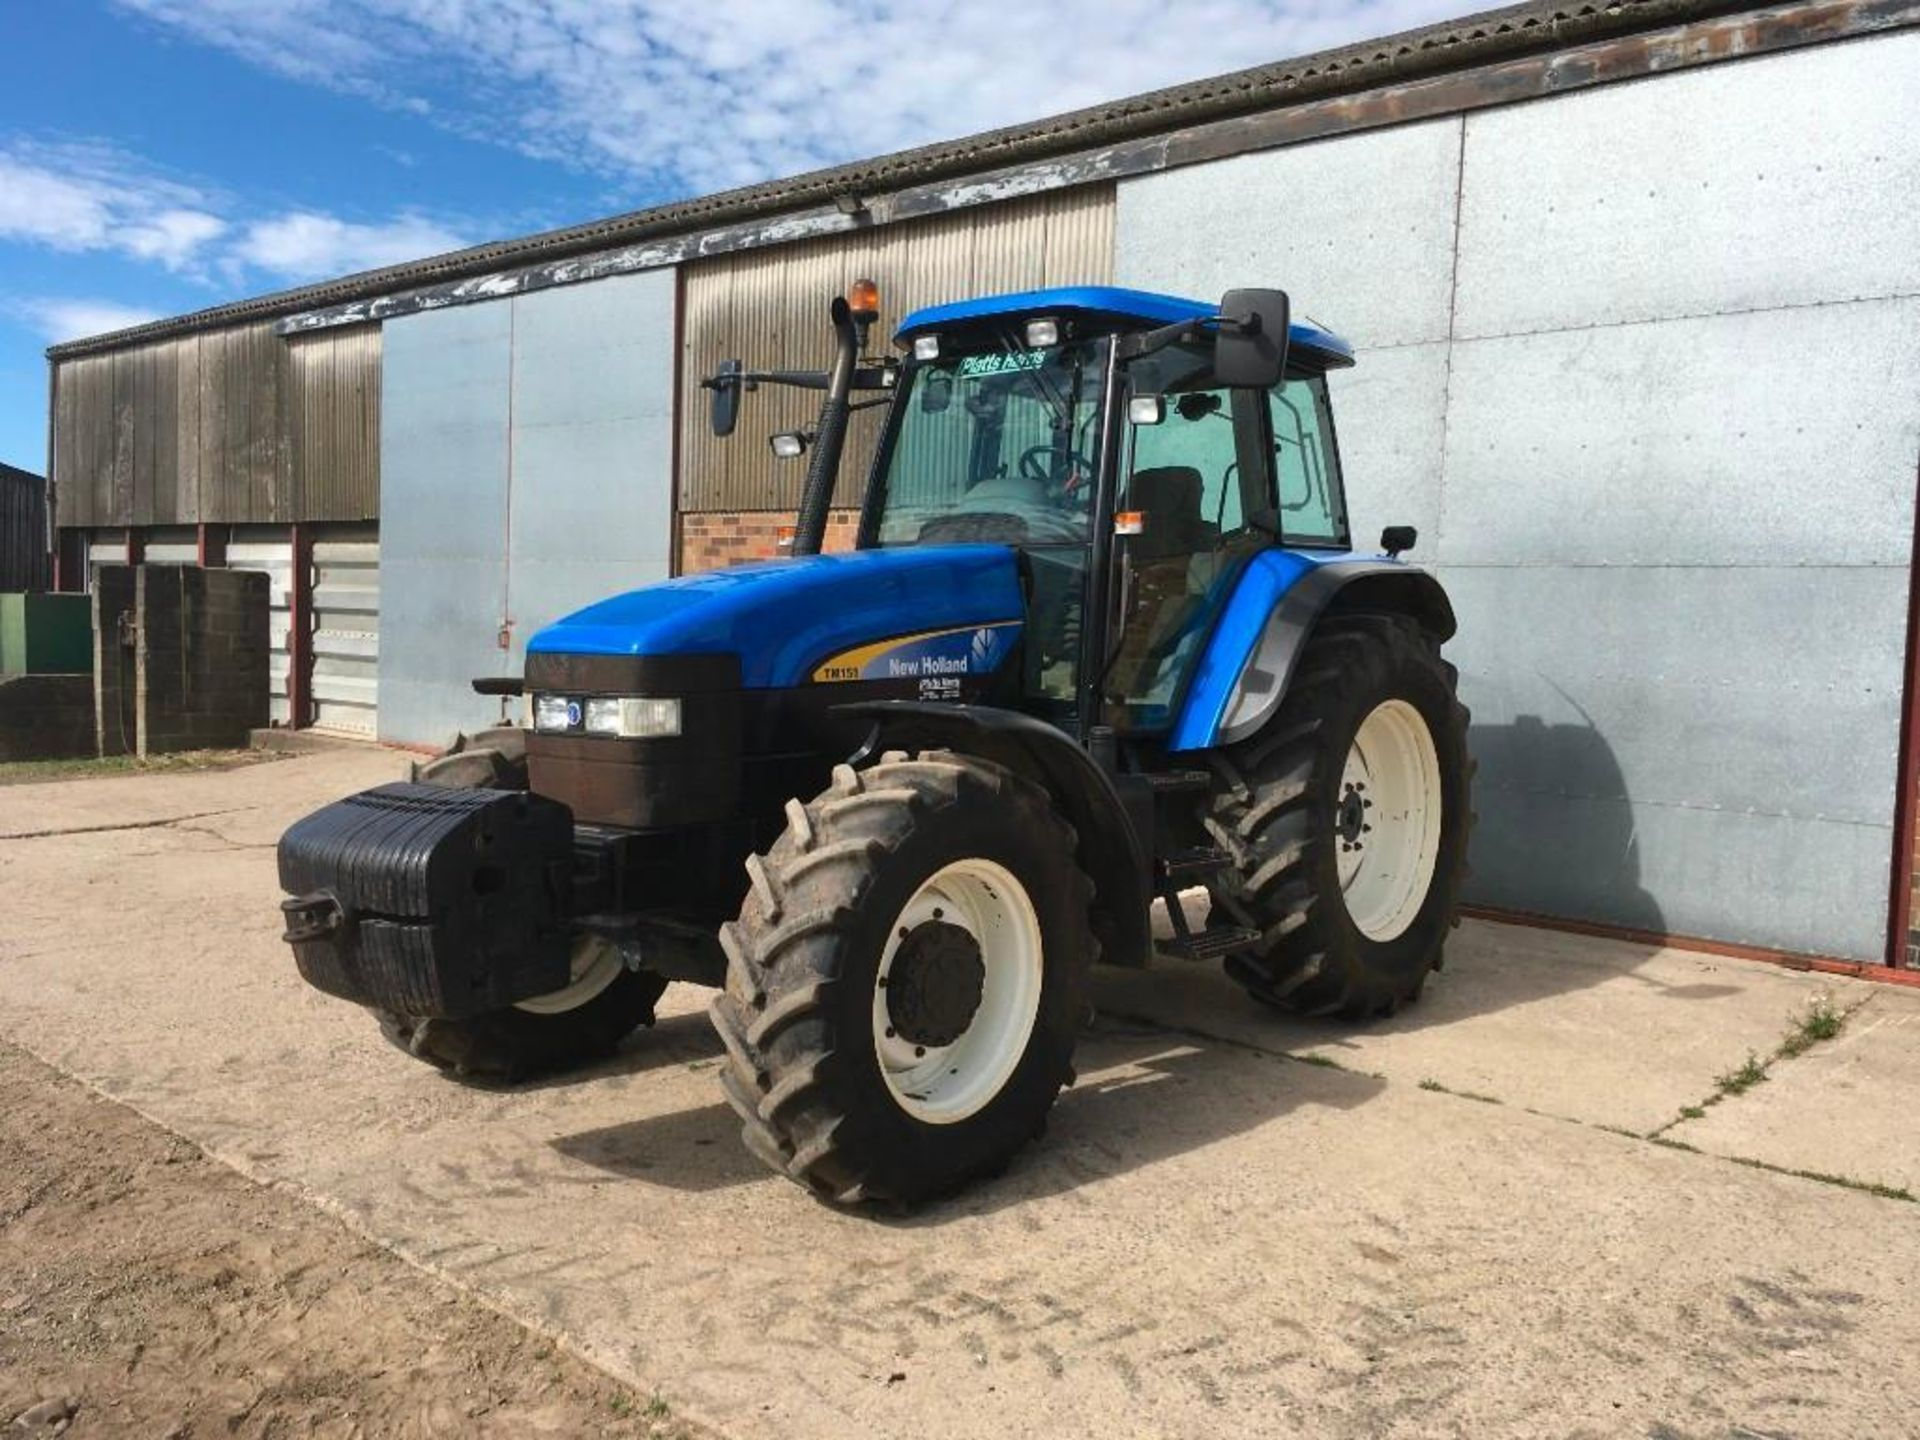 2007 New Holland TM155 tractor with range command gear box, 4 spool valves, push out pick up hitch,